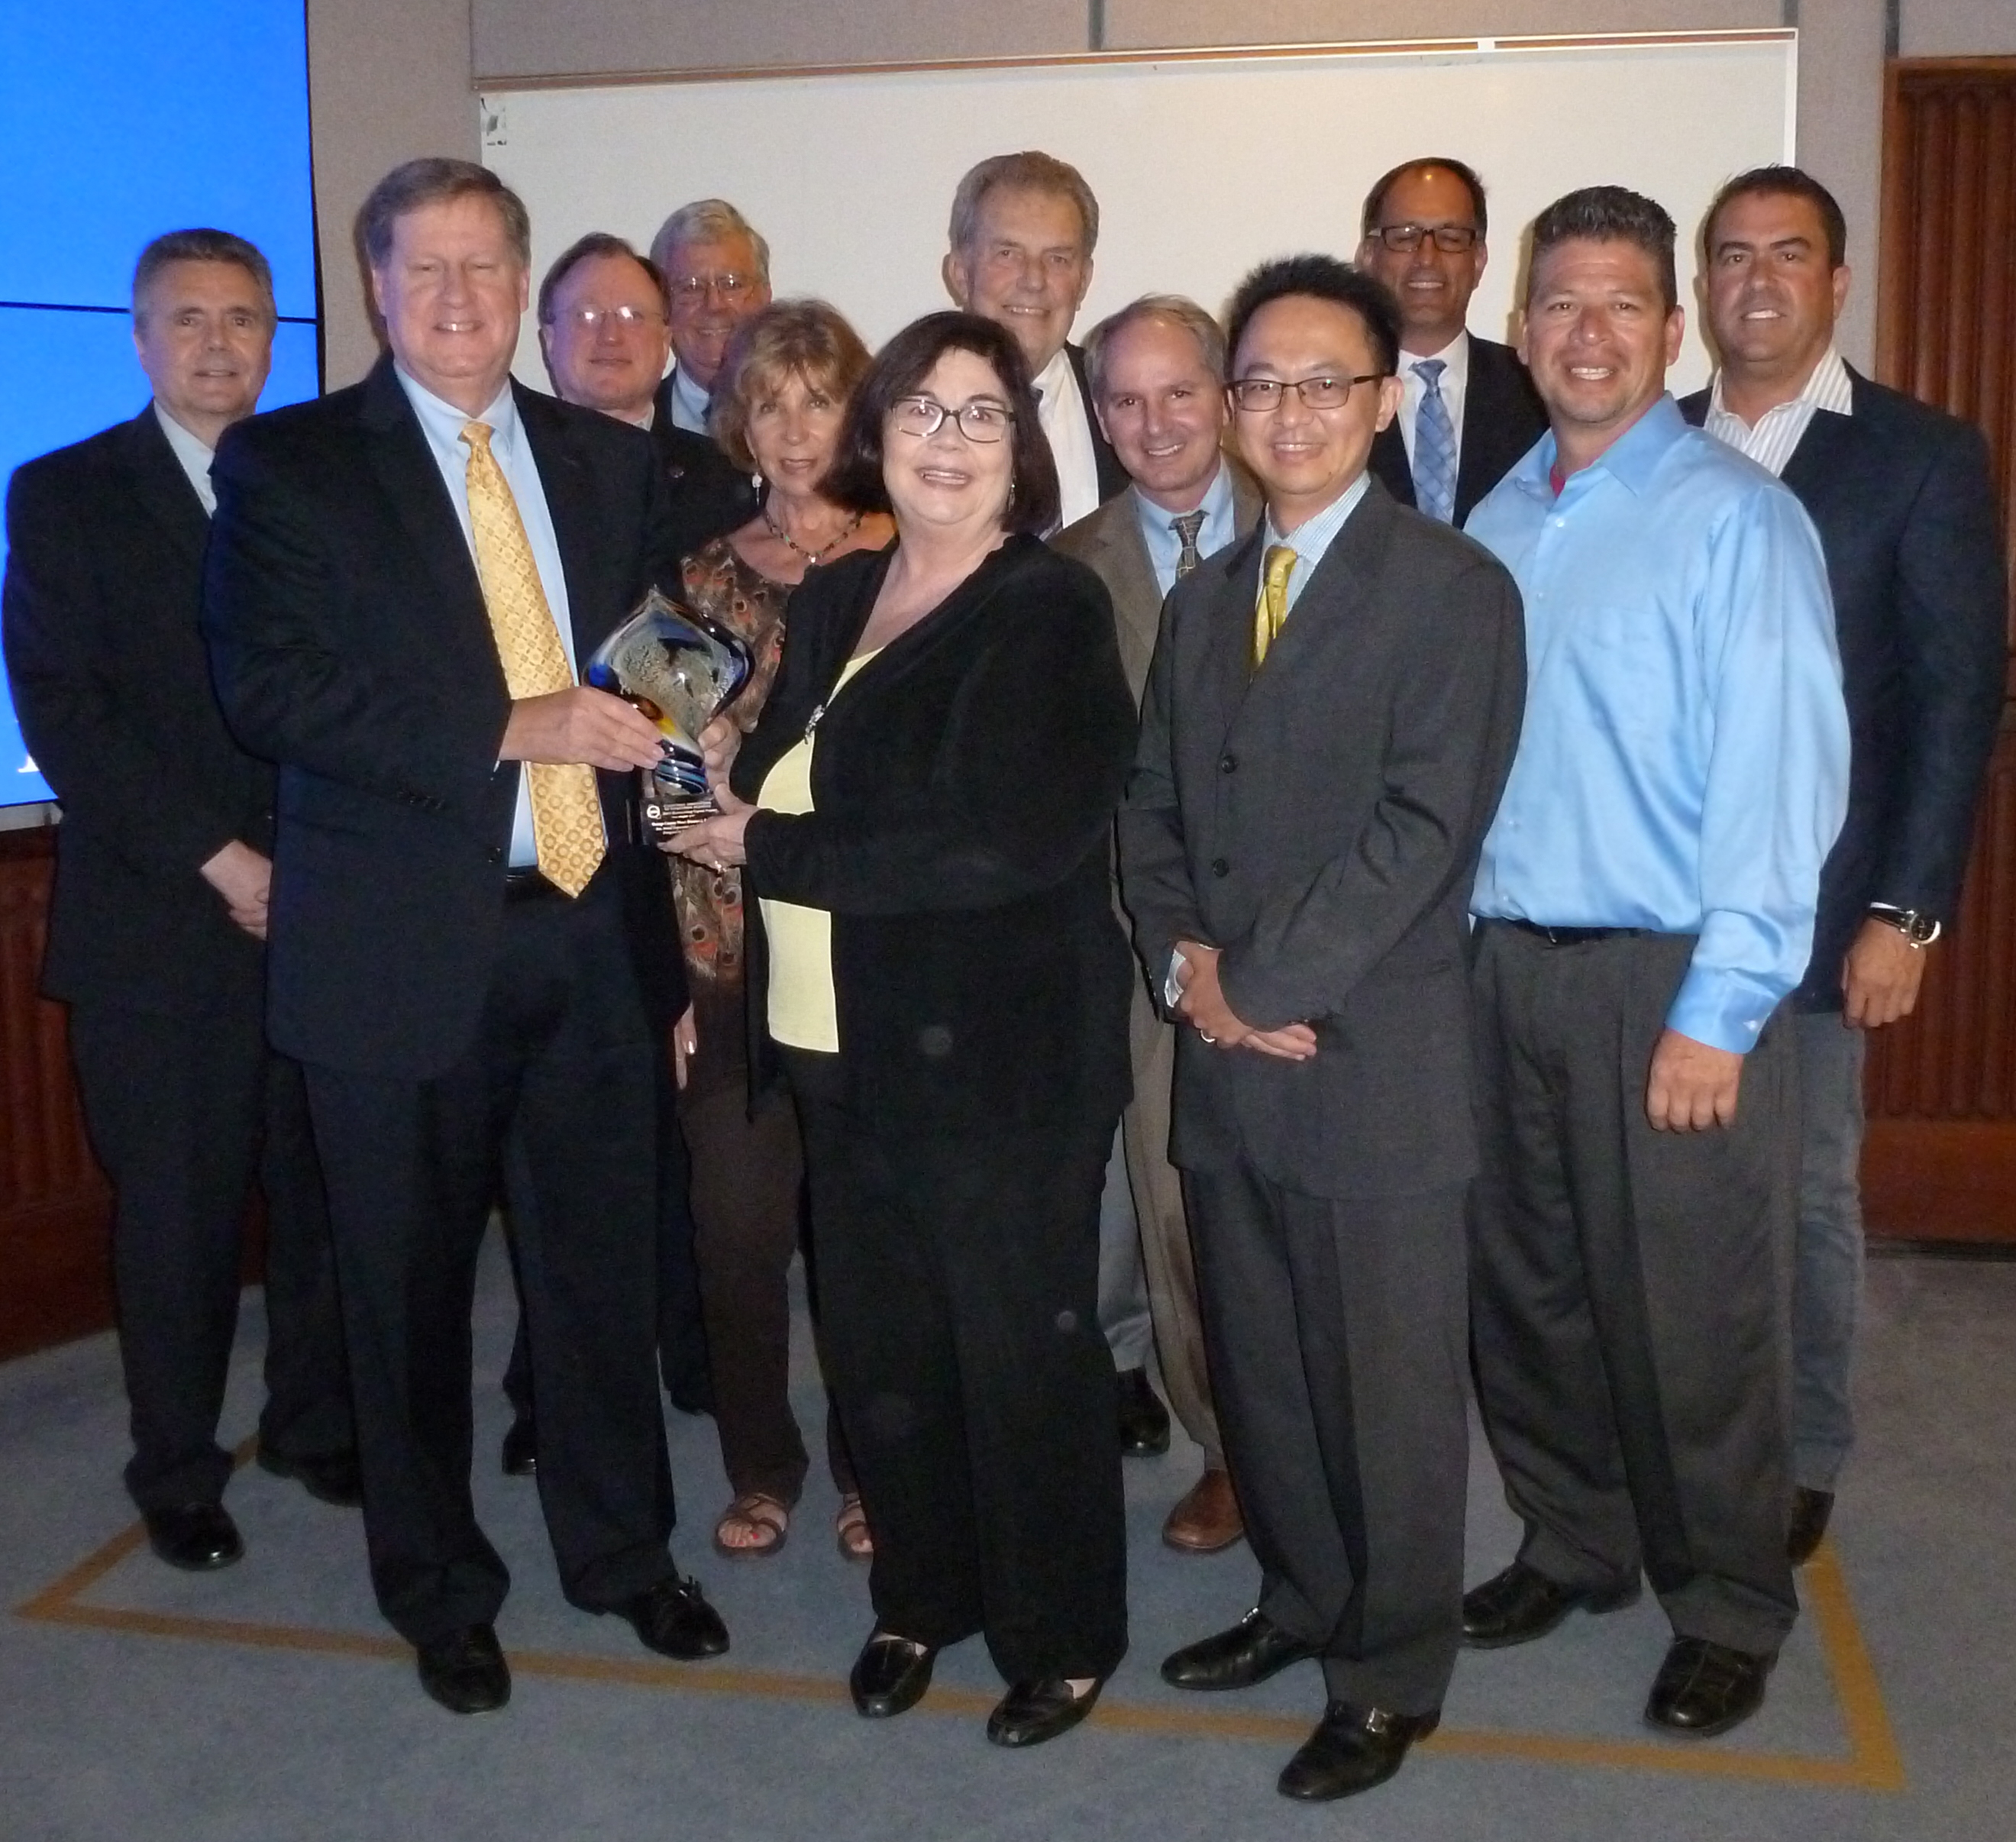 Board members and general managers from OCWD and OCSD accept the CASA Achievement Award at the Sept. 16 OCWD Board Meeting